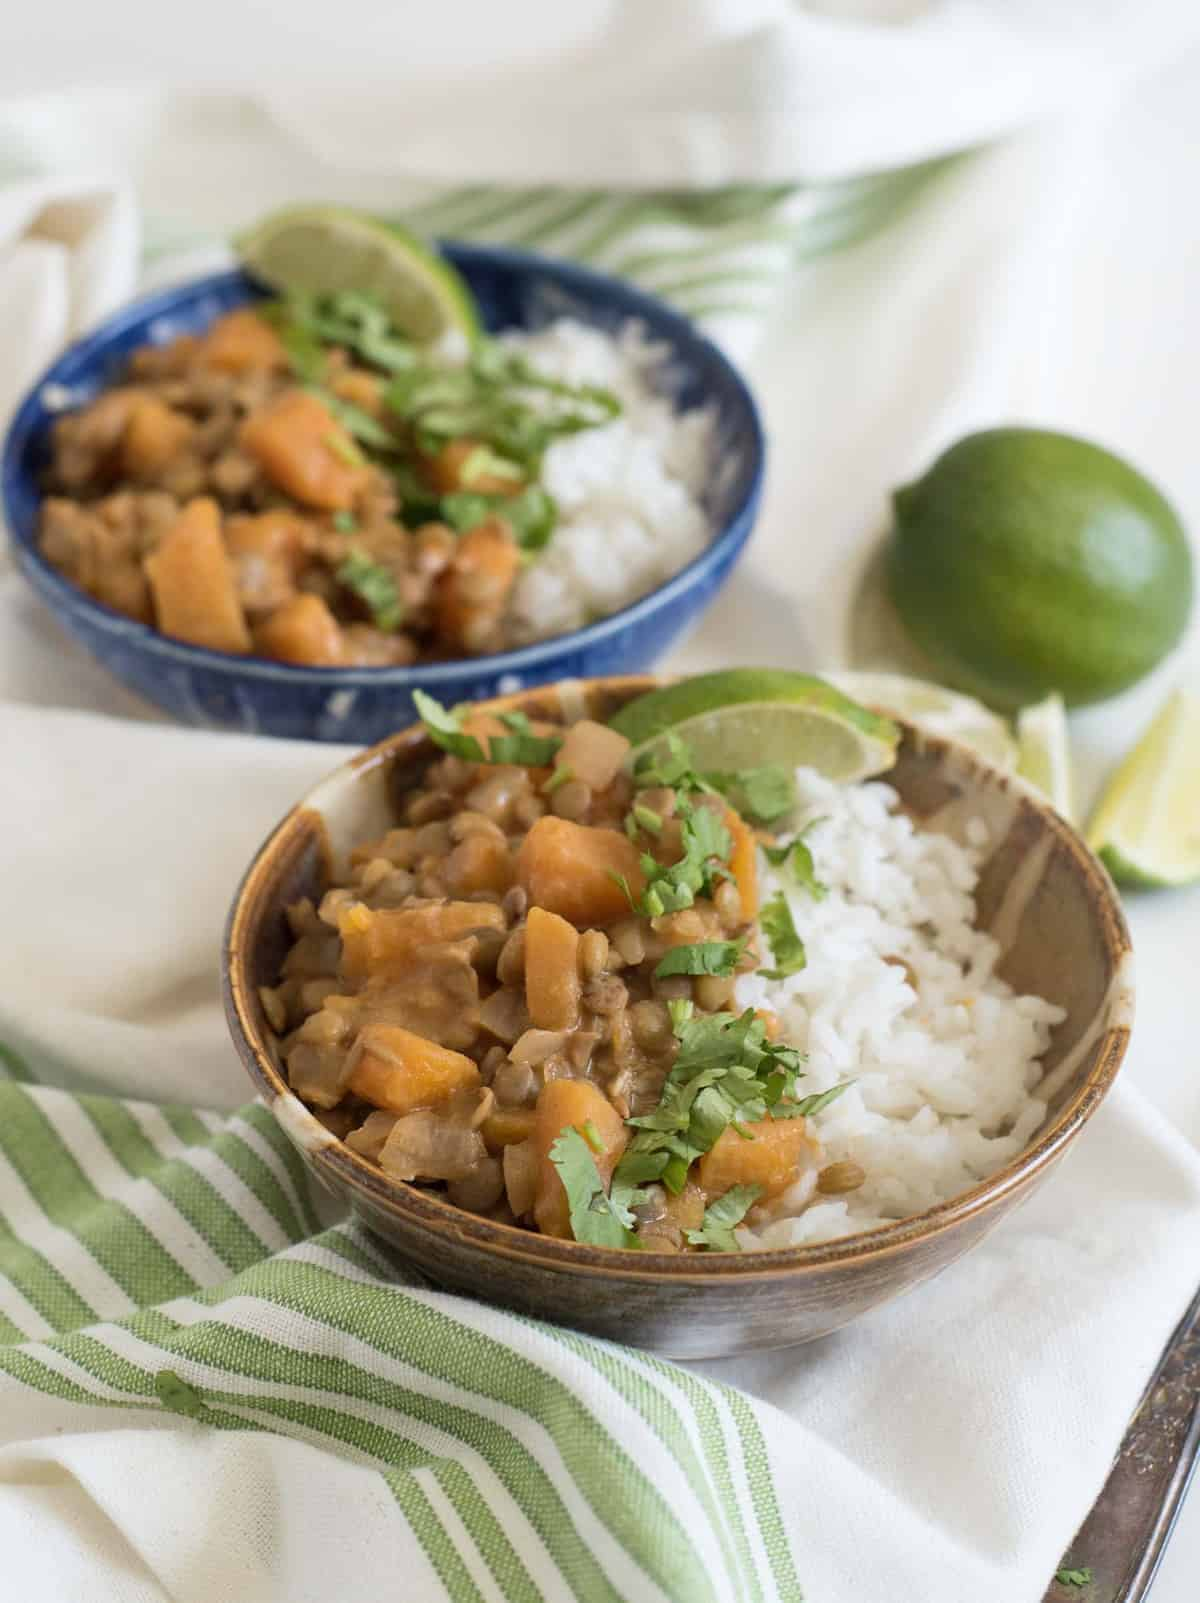 A simple lentil curry made with lentils, butternut squash, and coconut milk makes for a perfect and healthy plant-based dinner.